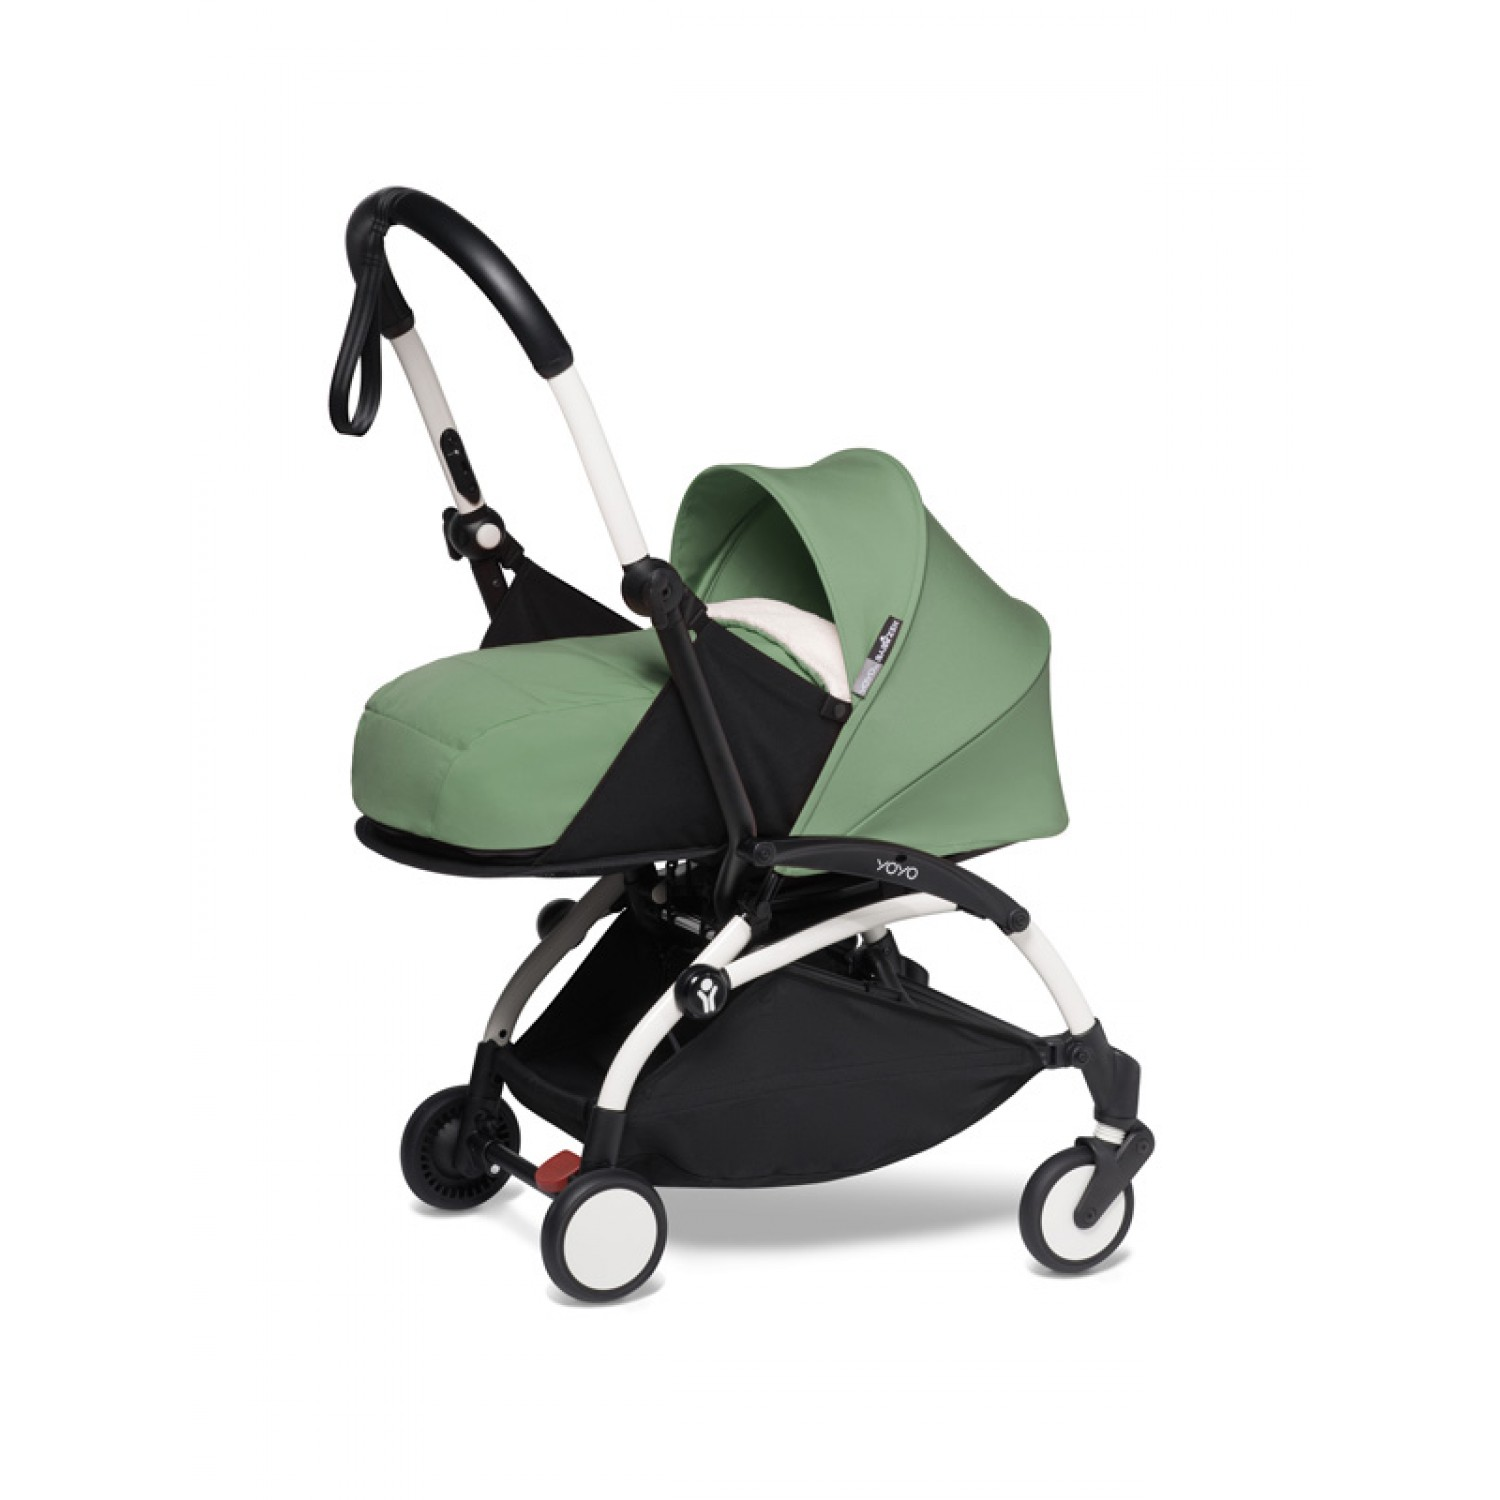 Complete BABYZEN stroller YOYO2  0+ and 6+ | White Chassis Peppermint